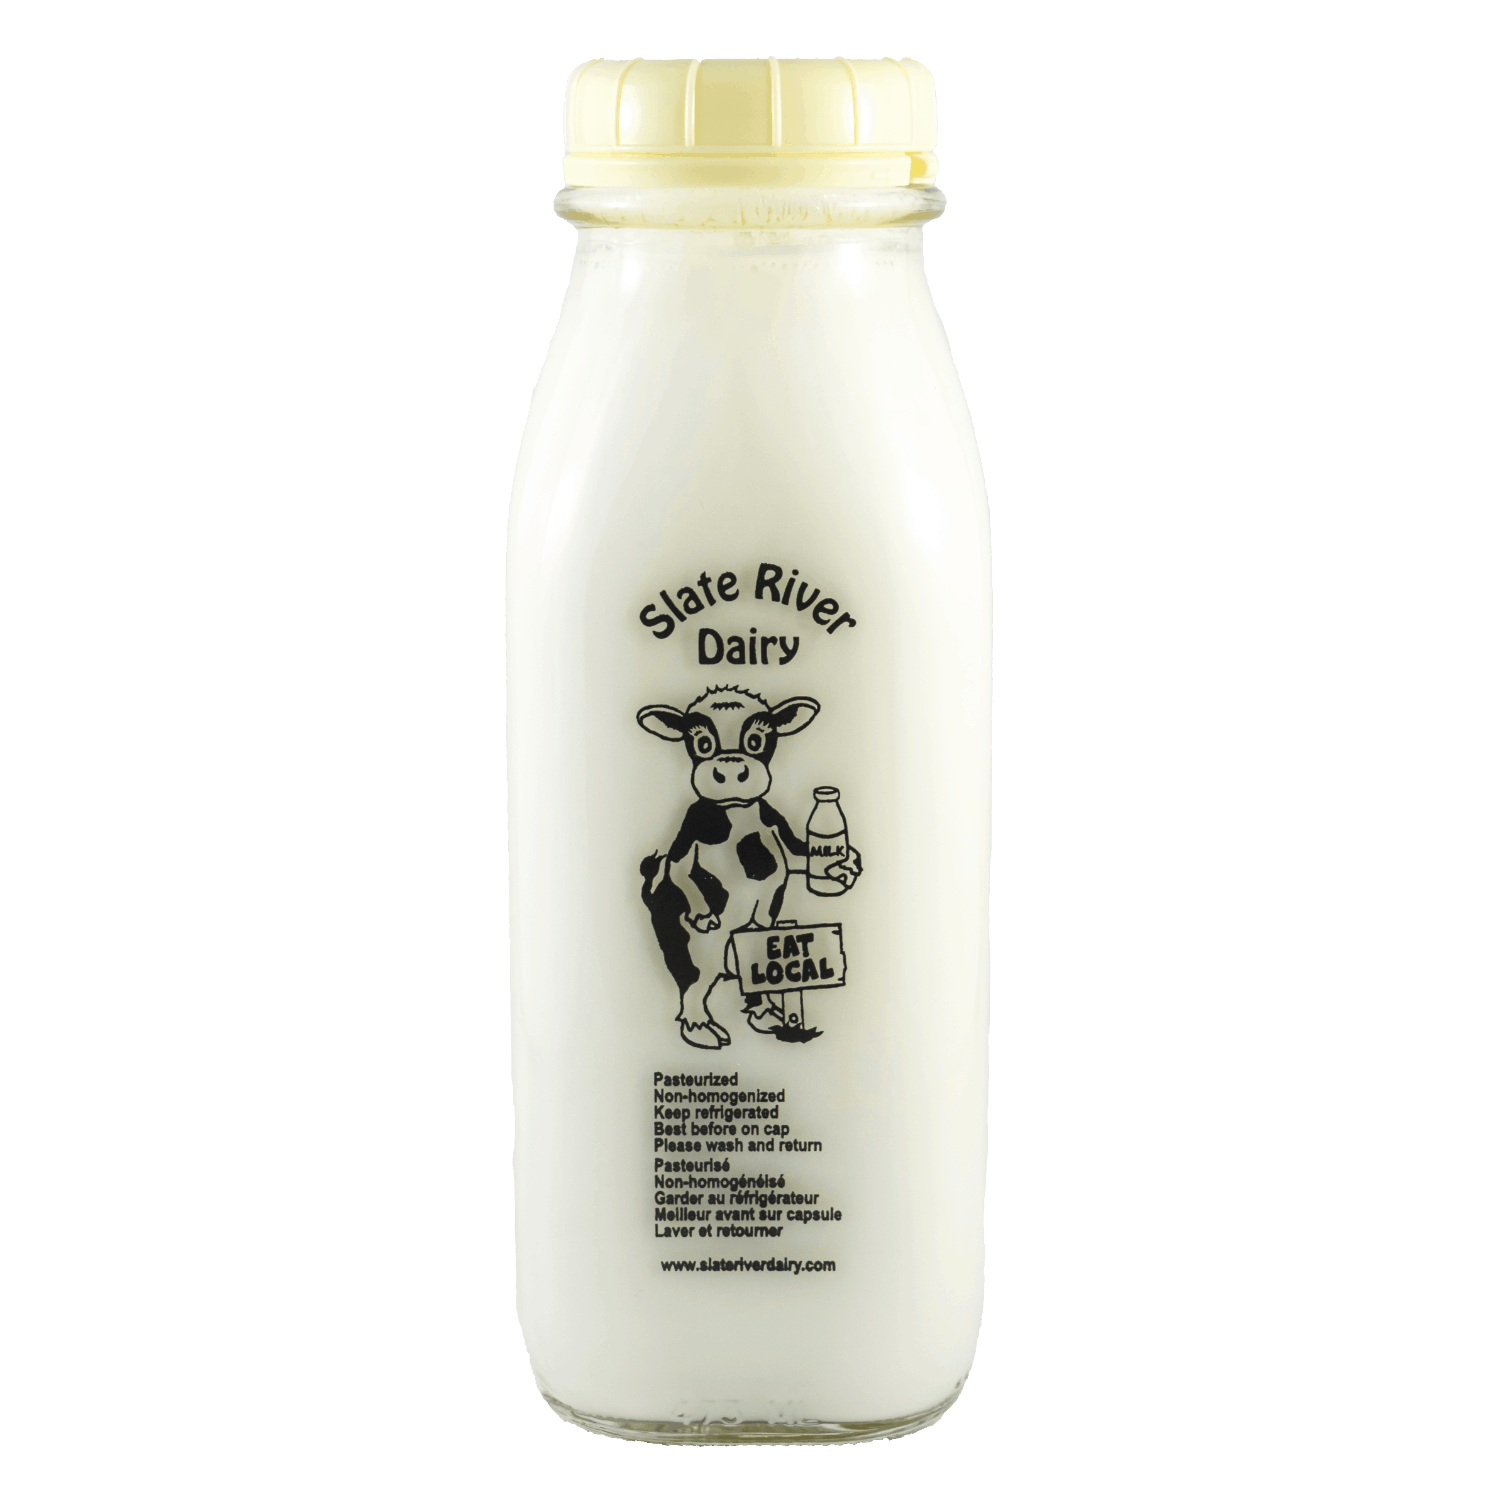 Buttermilk from Slate River Dairy